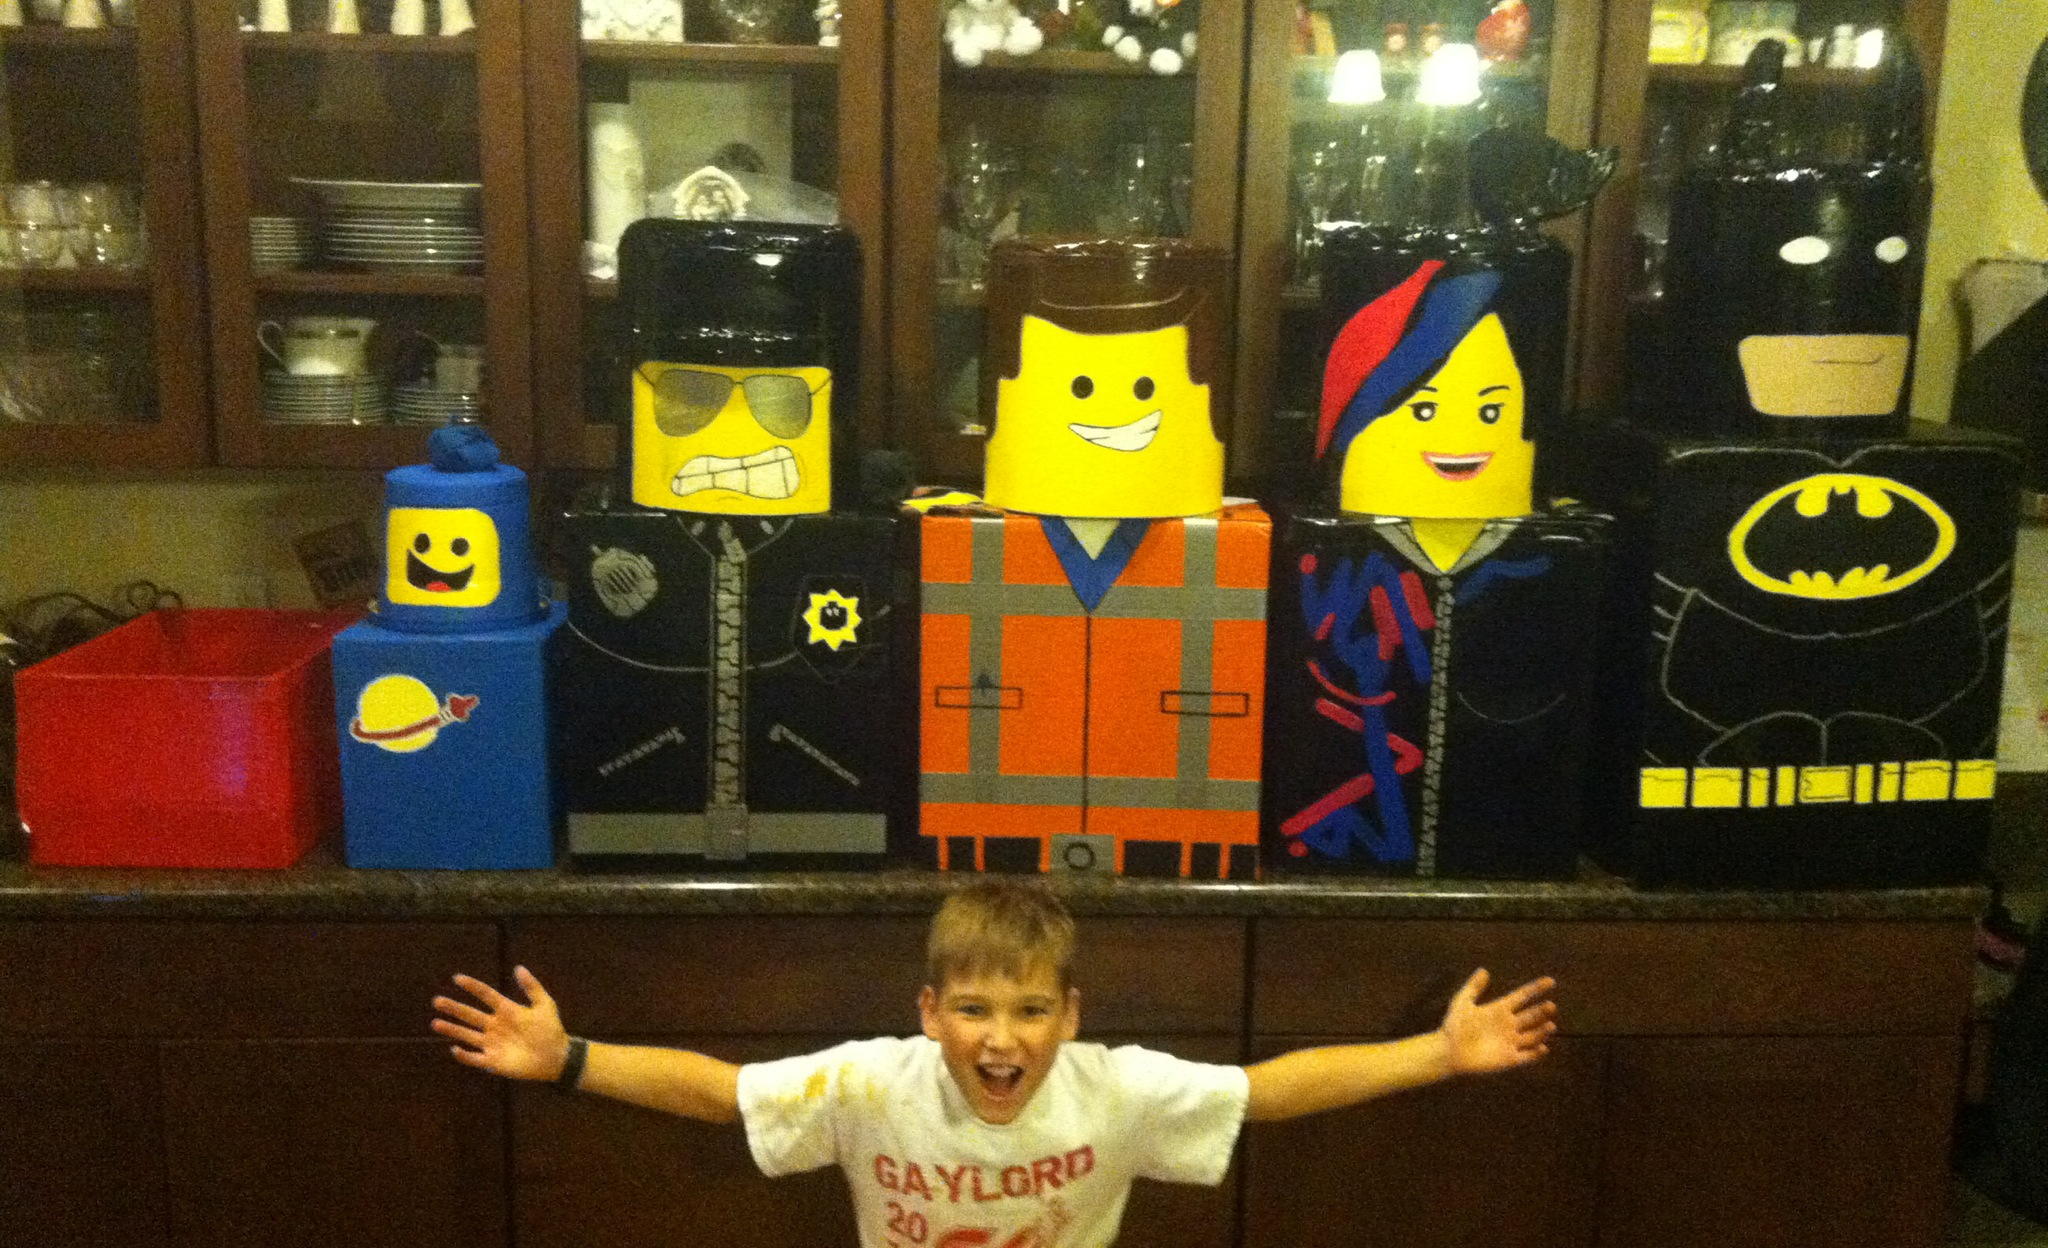 Halloween menne thoughts halloween 2014 we wanted to go for a family costume theme and the kids absolutely love the lego movie so it seemed like a great fit solutioingenieria Gallery